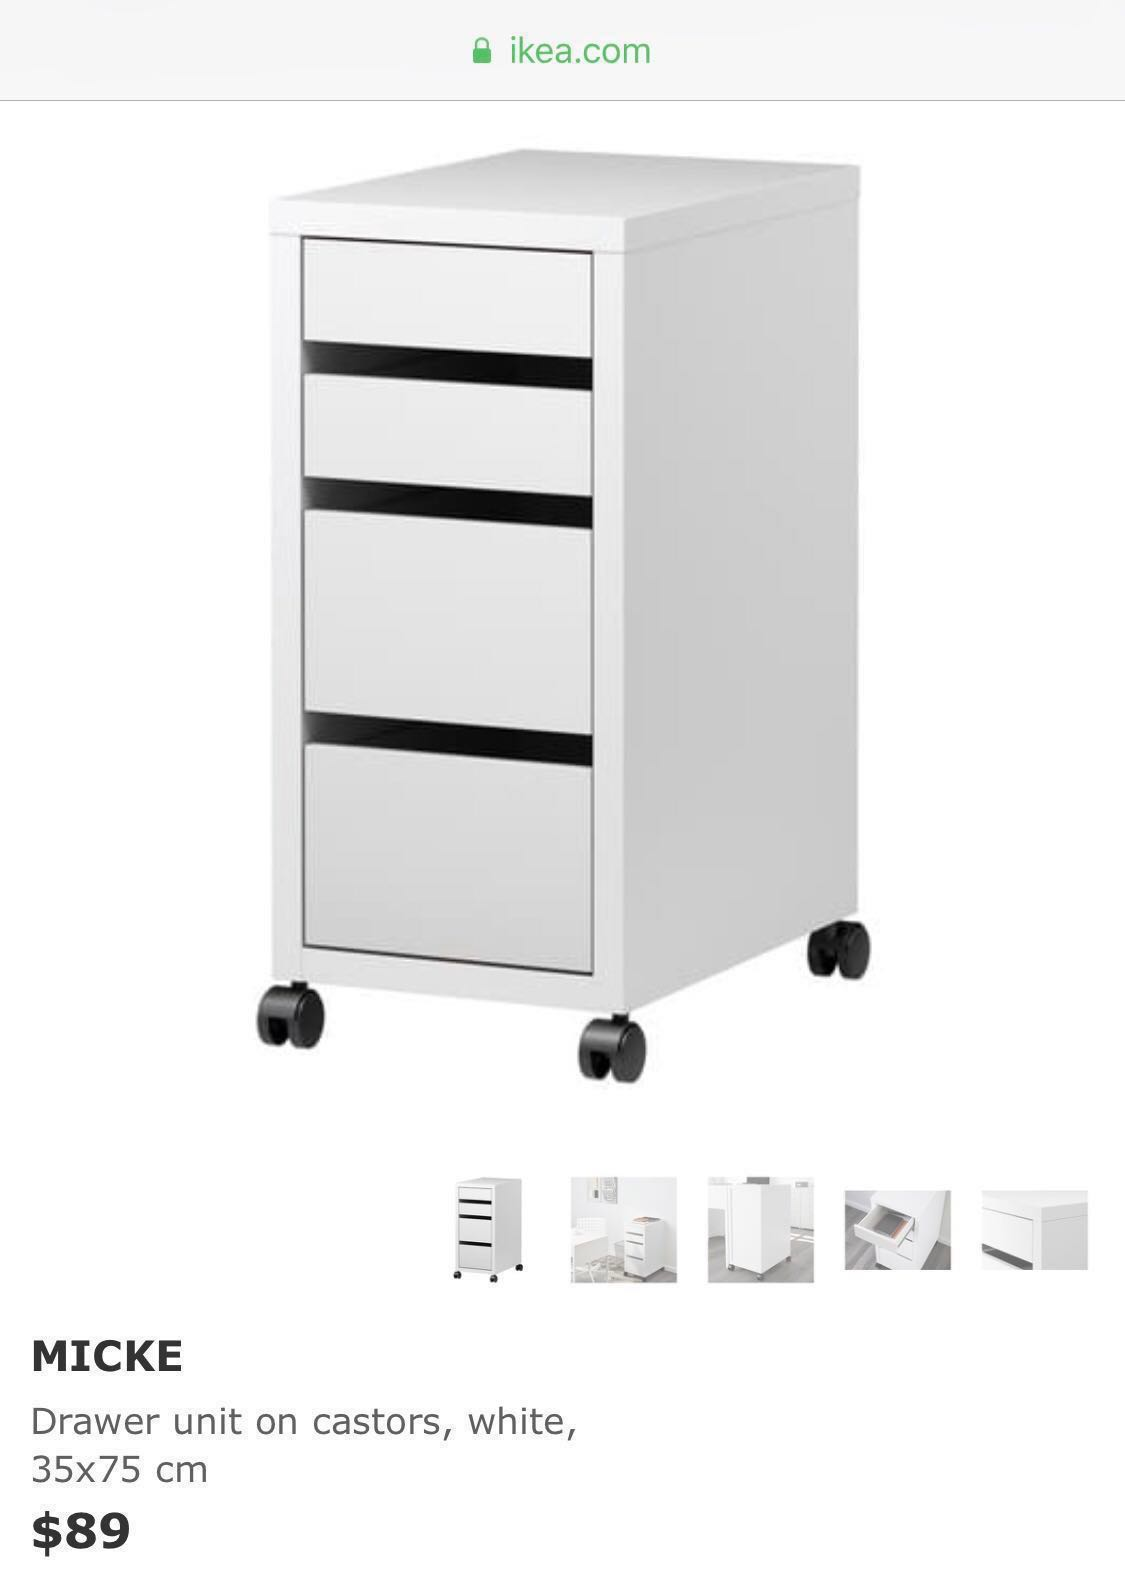 Free Delivery Bn Ikea Micke Drawer Furniture Shelves Drawers On